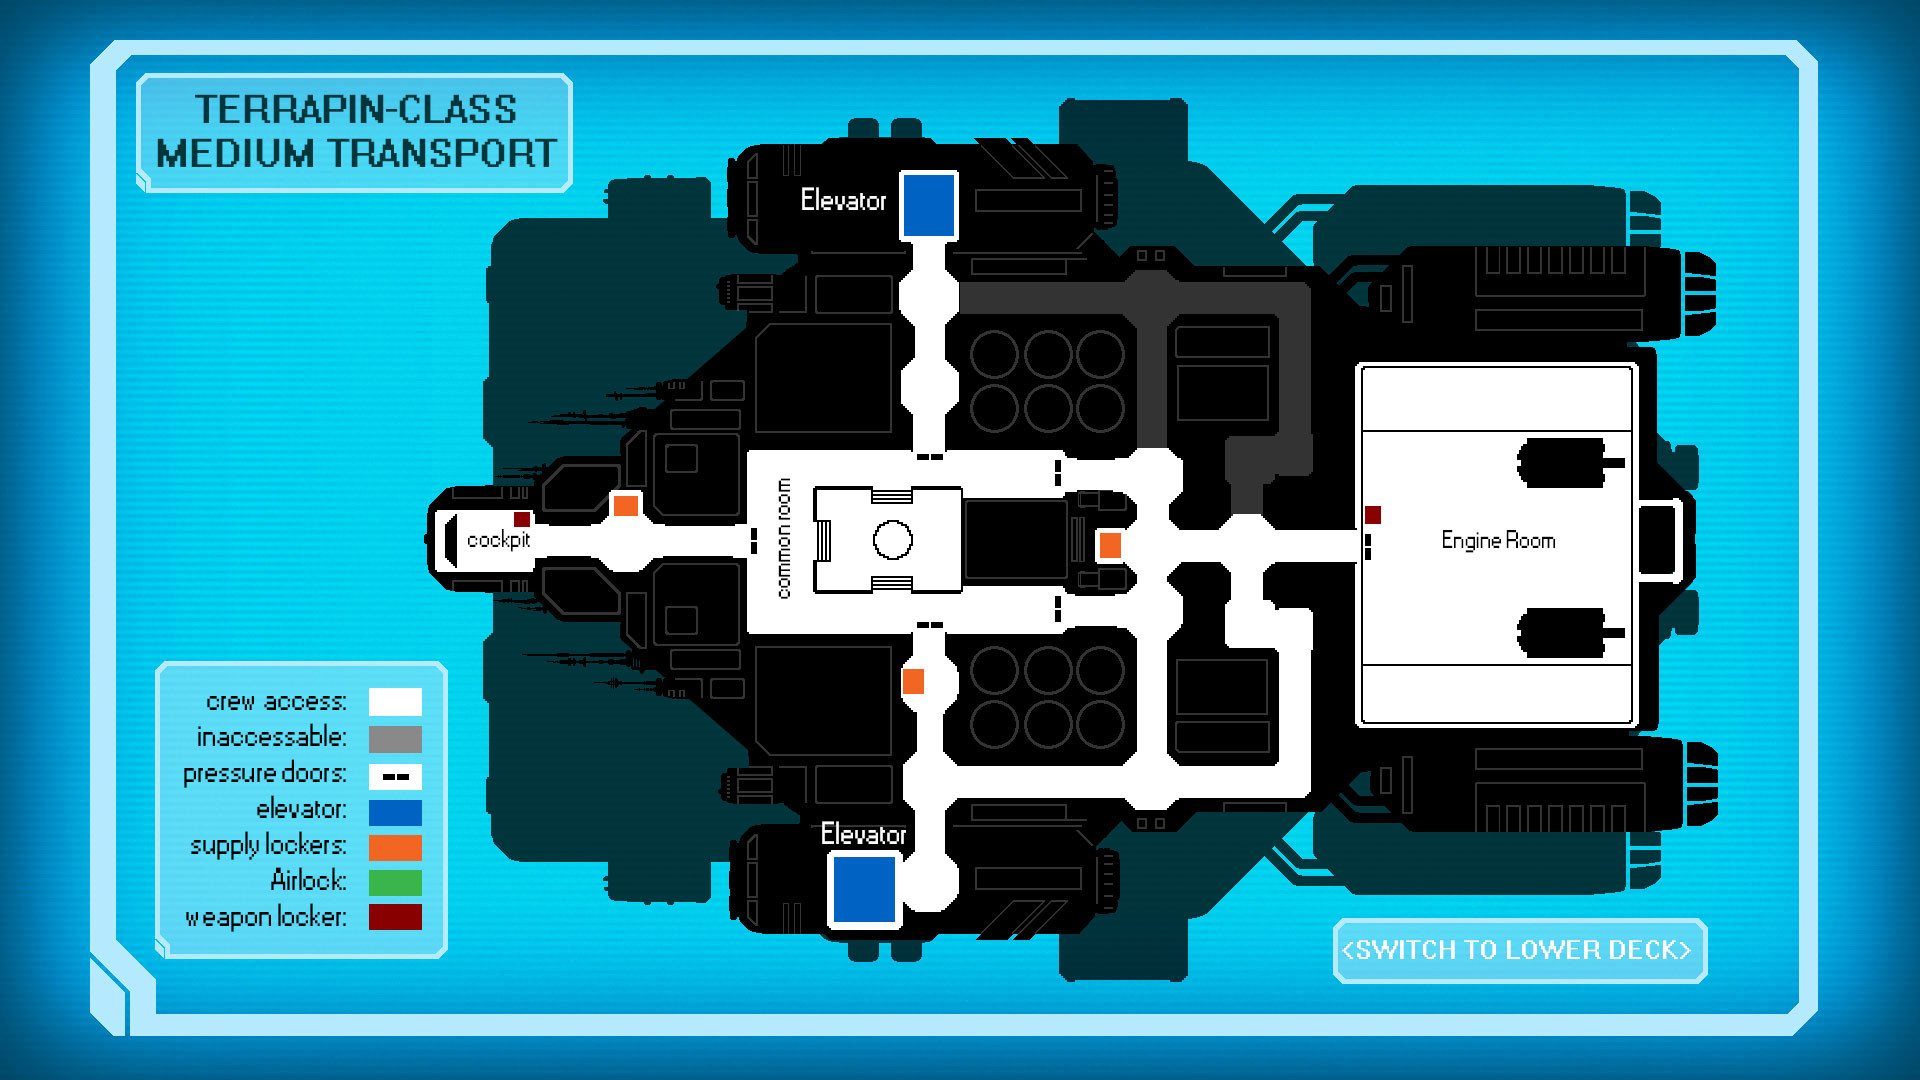 Map screen, upper level. I had to make up a lot of spaceship information to make sense of the twisting hallways.